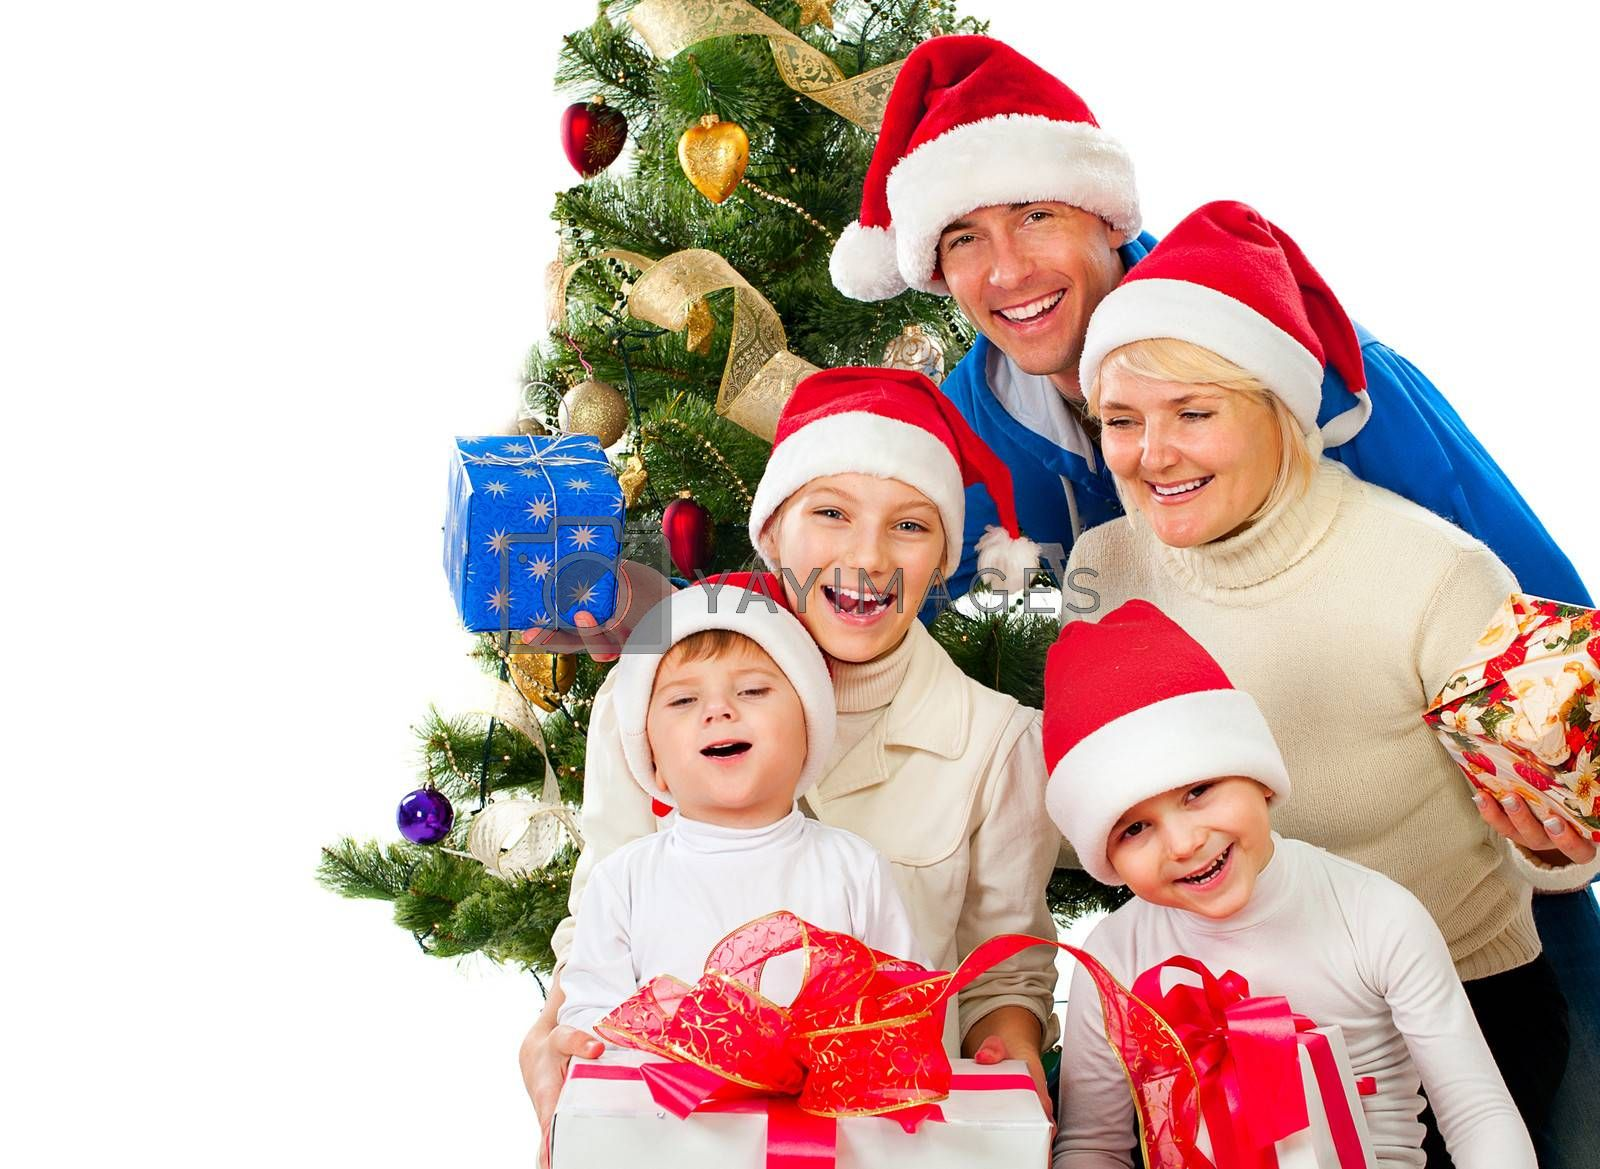 Christmas Family With Gifts near a Christmas Tree by SubbotinaA